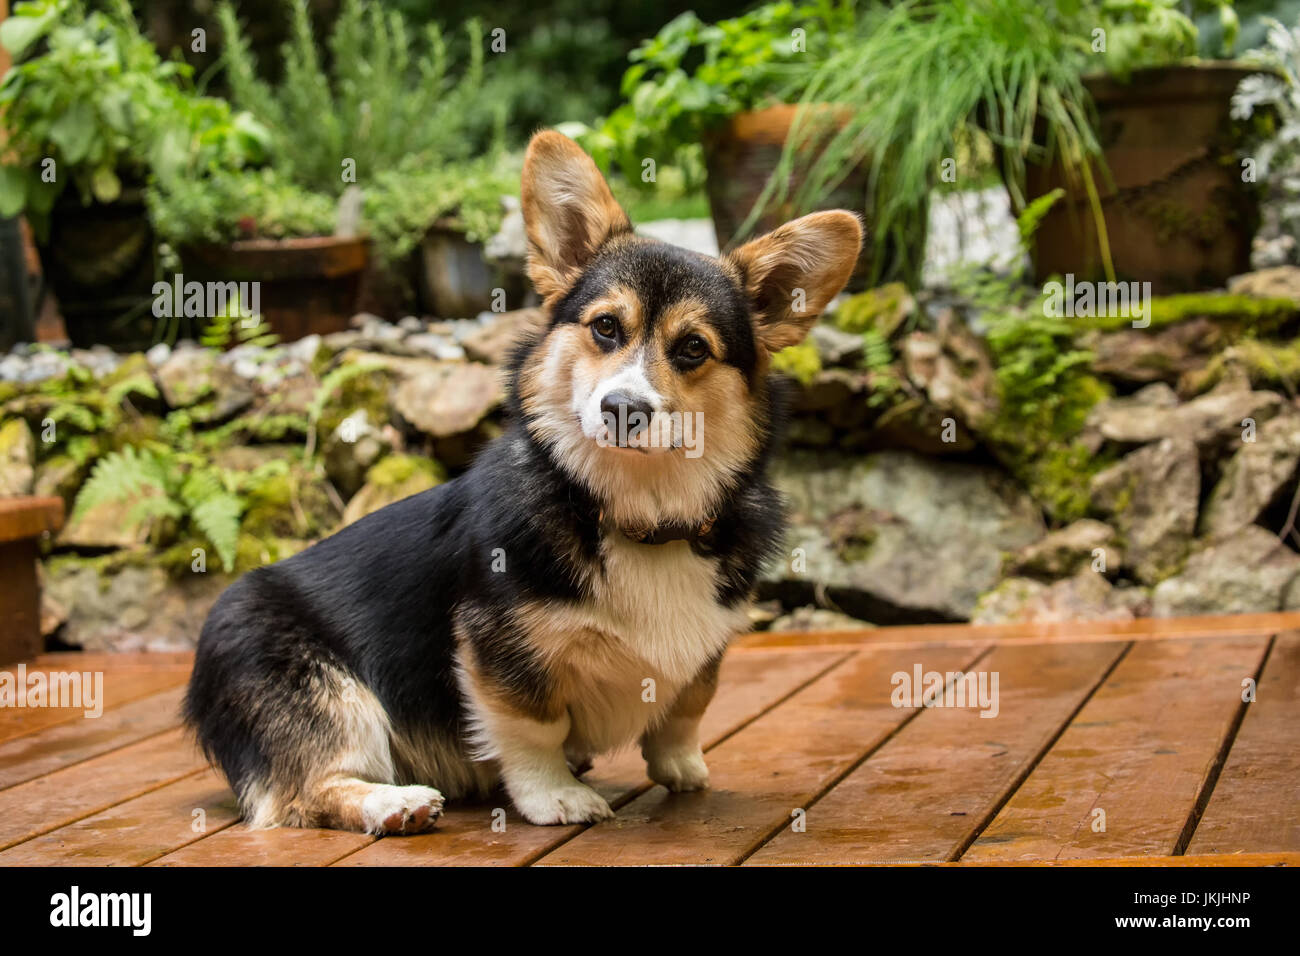 Tucker, a six month old Corgi puppy, posing on his wooden deck in Issaquah, Washington, USA - Stock Image